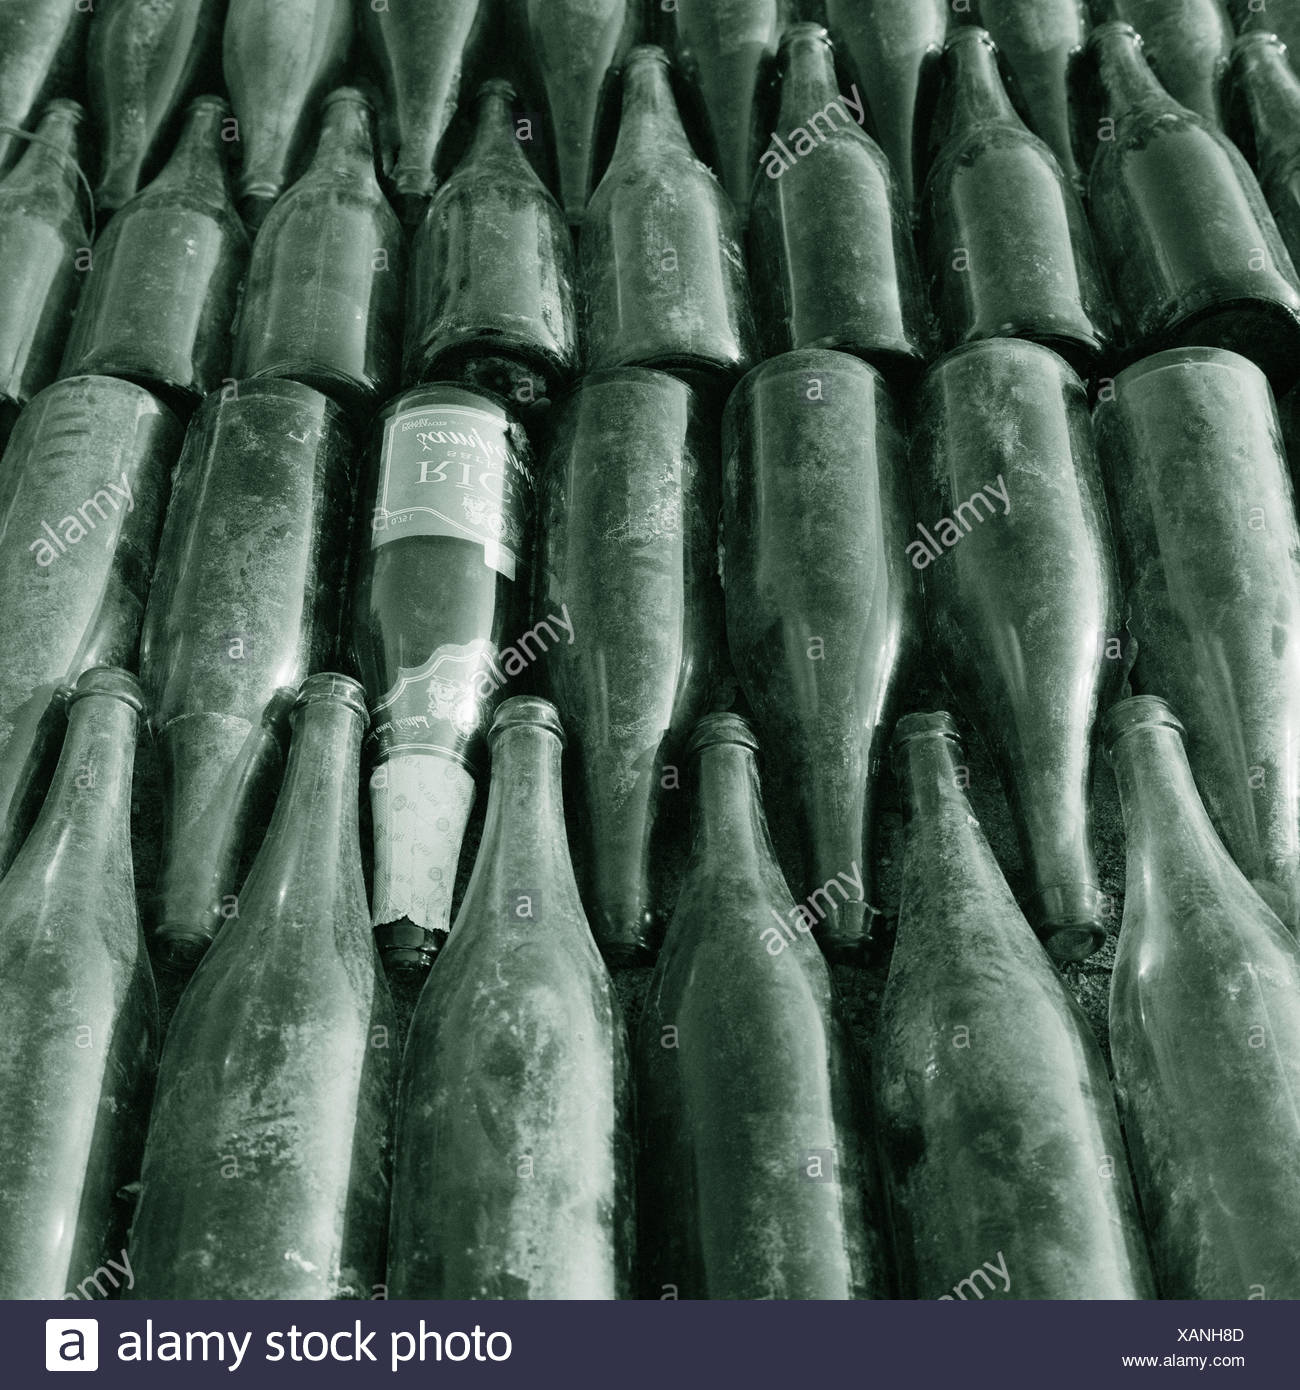 Old glass, Sparkling Wine Bottles, ordered, detail, environment protection, recycling, recycling, re-use, Bottles, glass Bottles, glass, green, dark green glass, garbage, waste, garbage separation, separation, raw material, order, juxtaposition, system, l - Stock Image